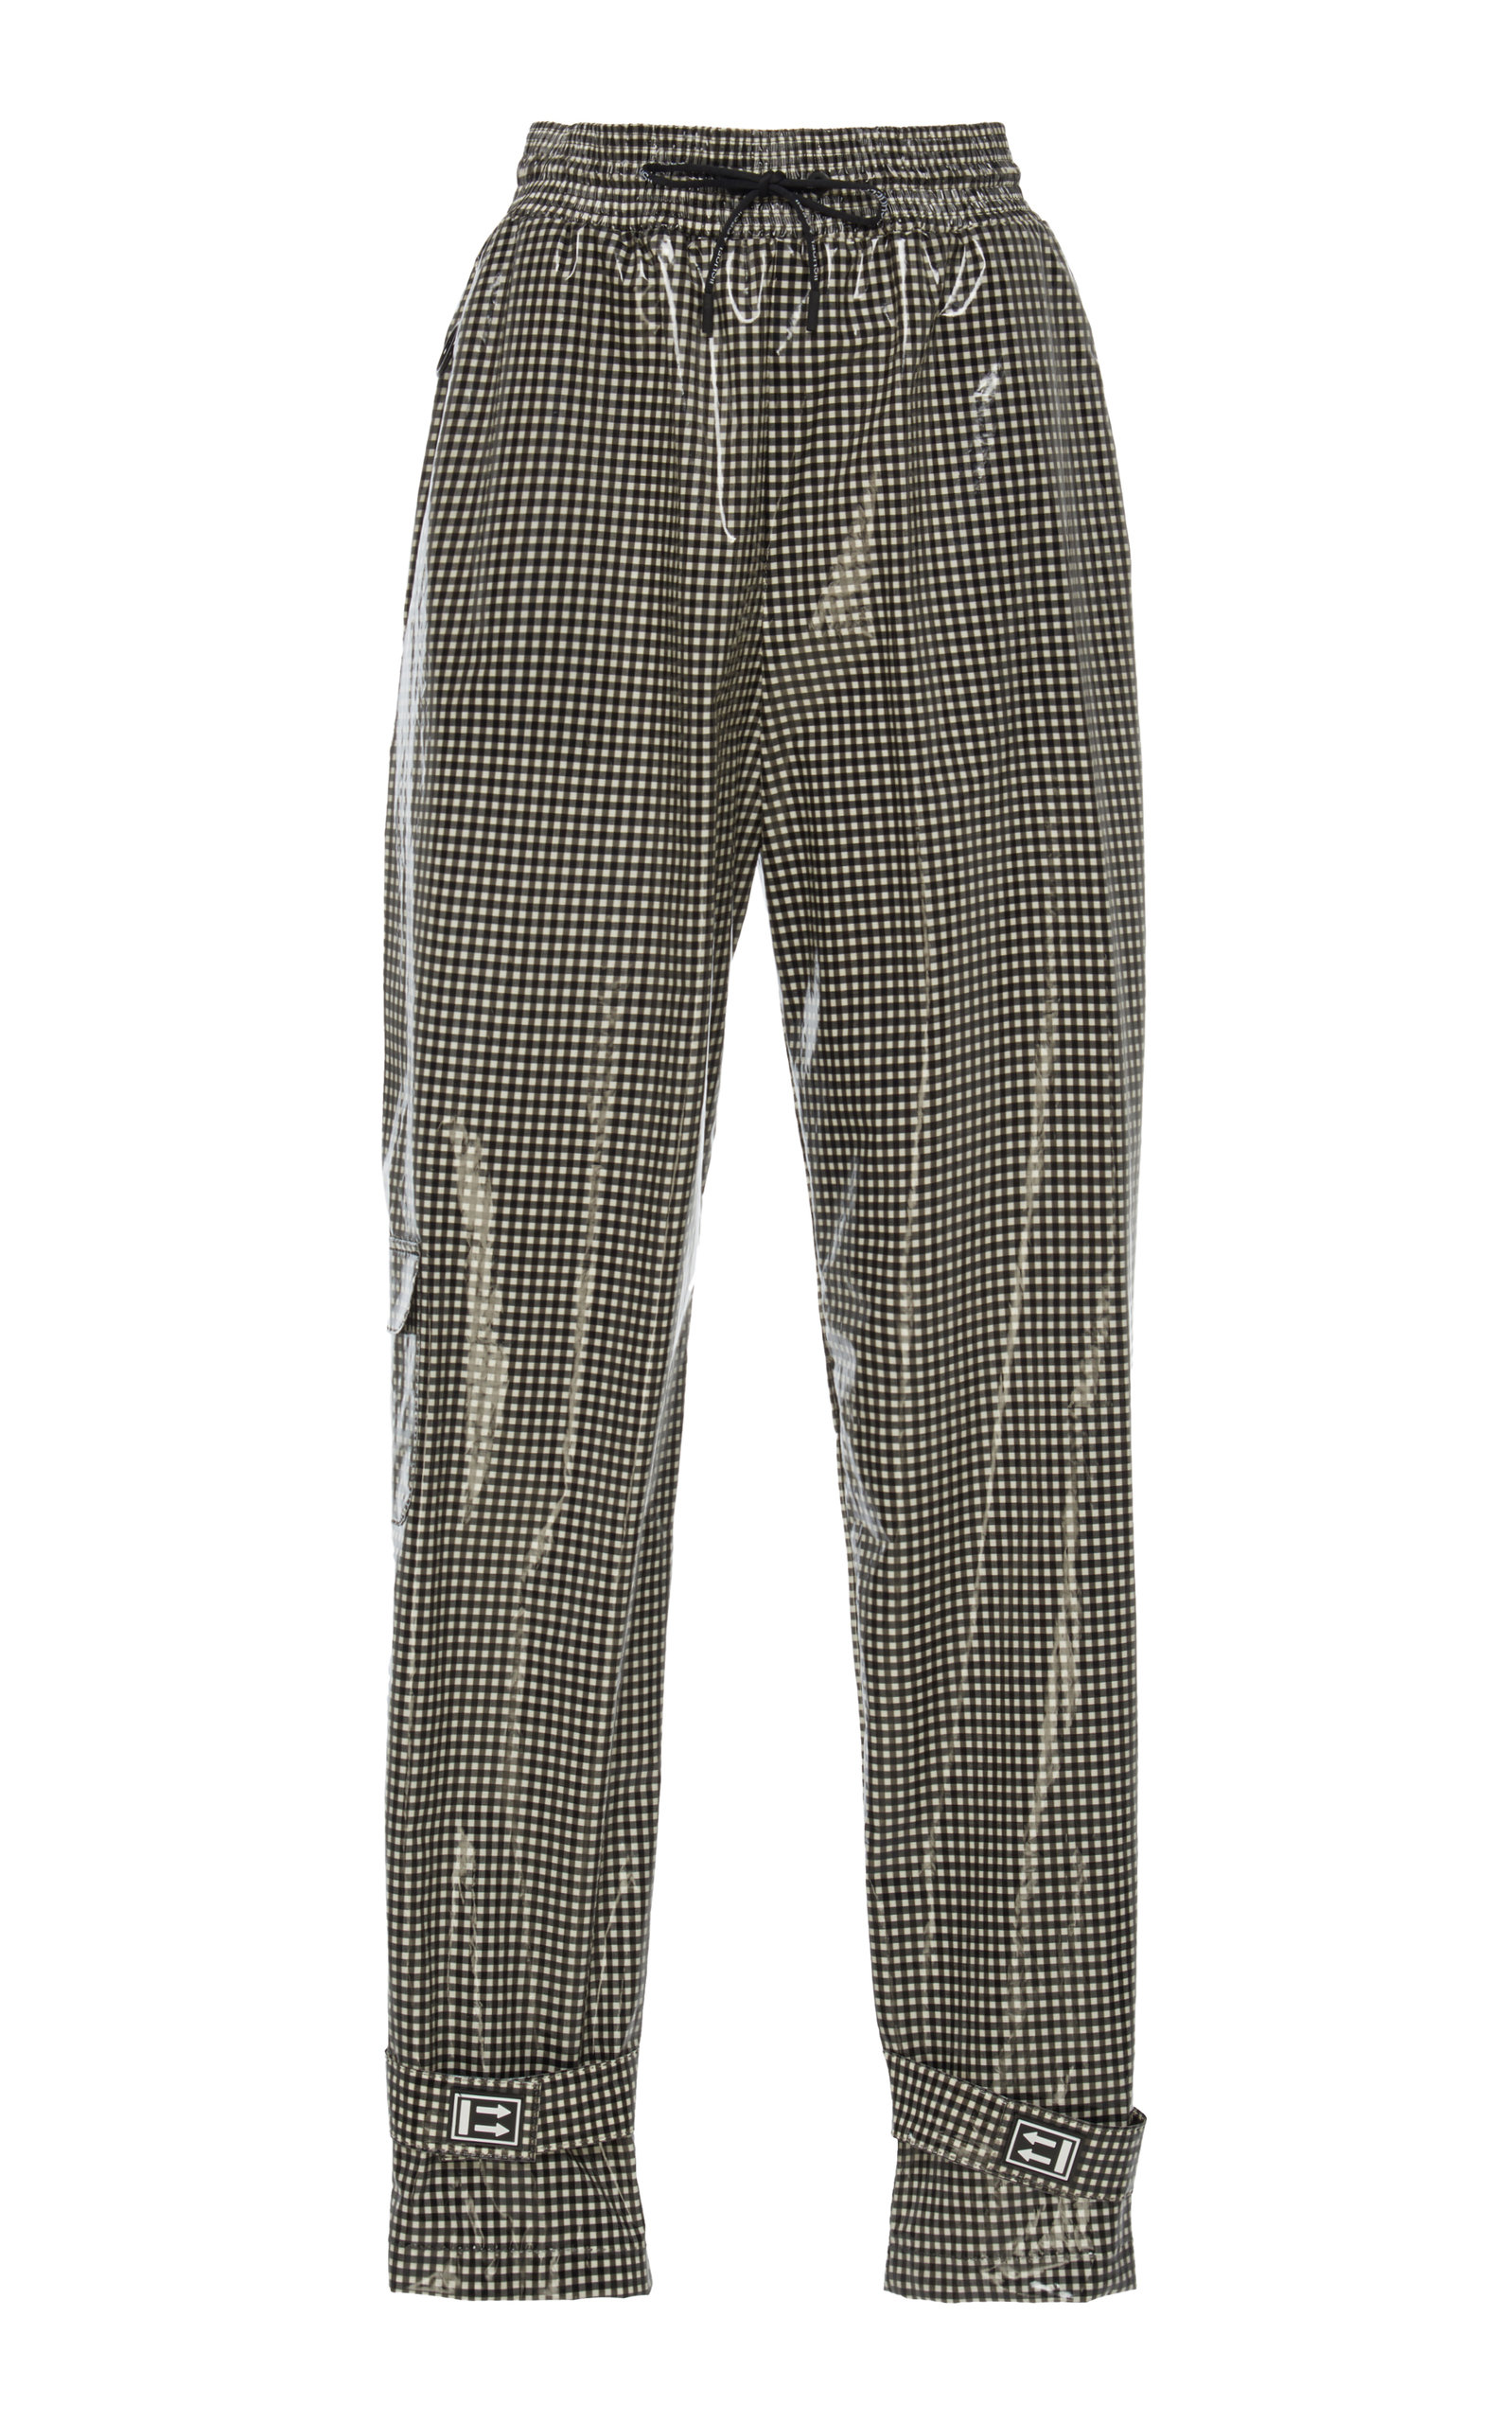 e6448997295d Gingham Jogging Pants by Off-White c o Virgil Abloh